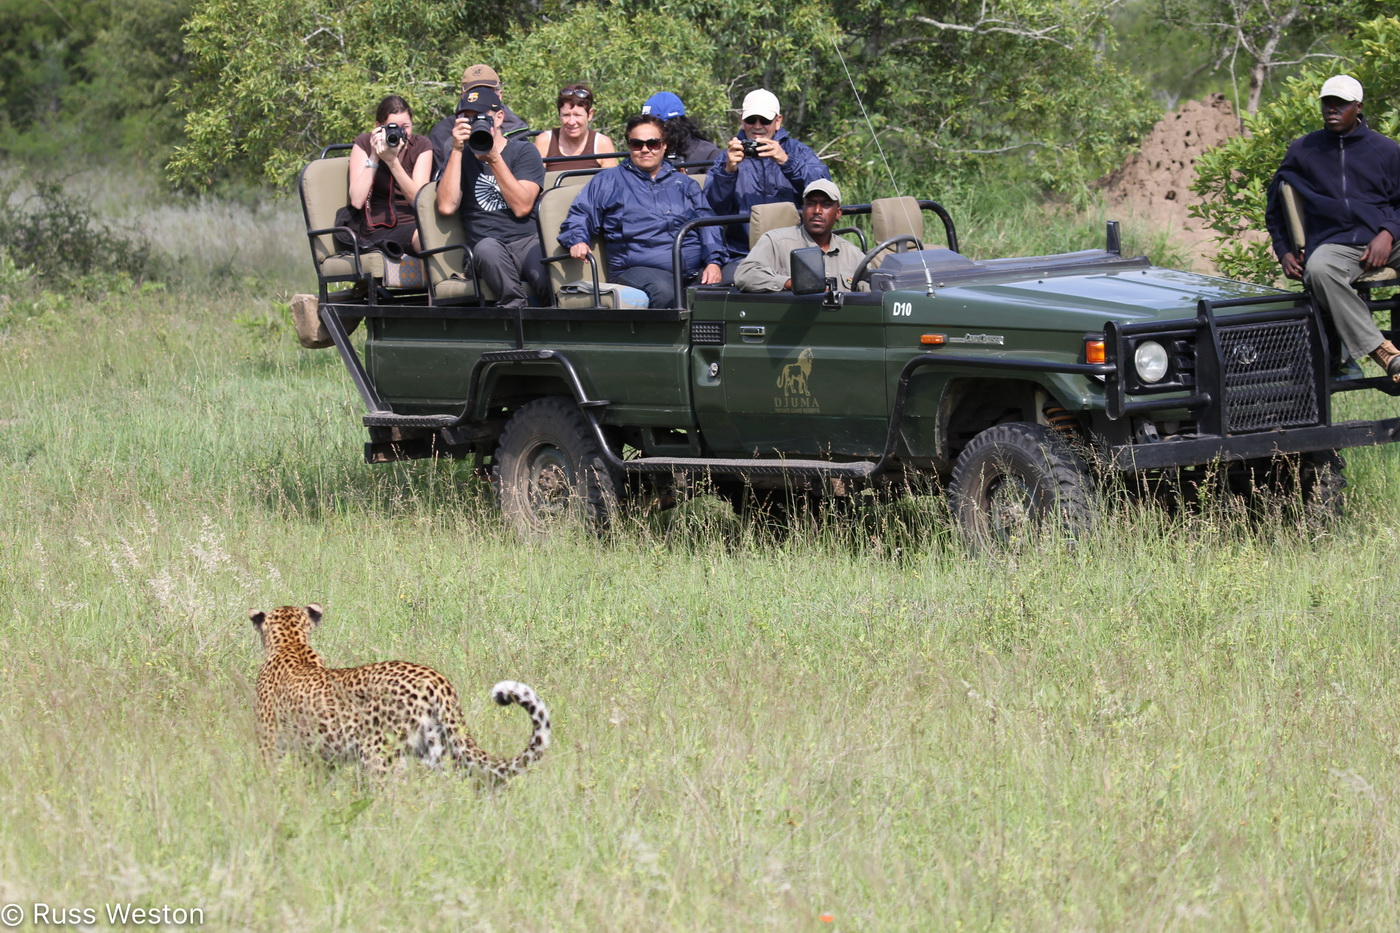 Encountering Leopard on Safari